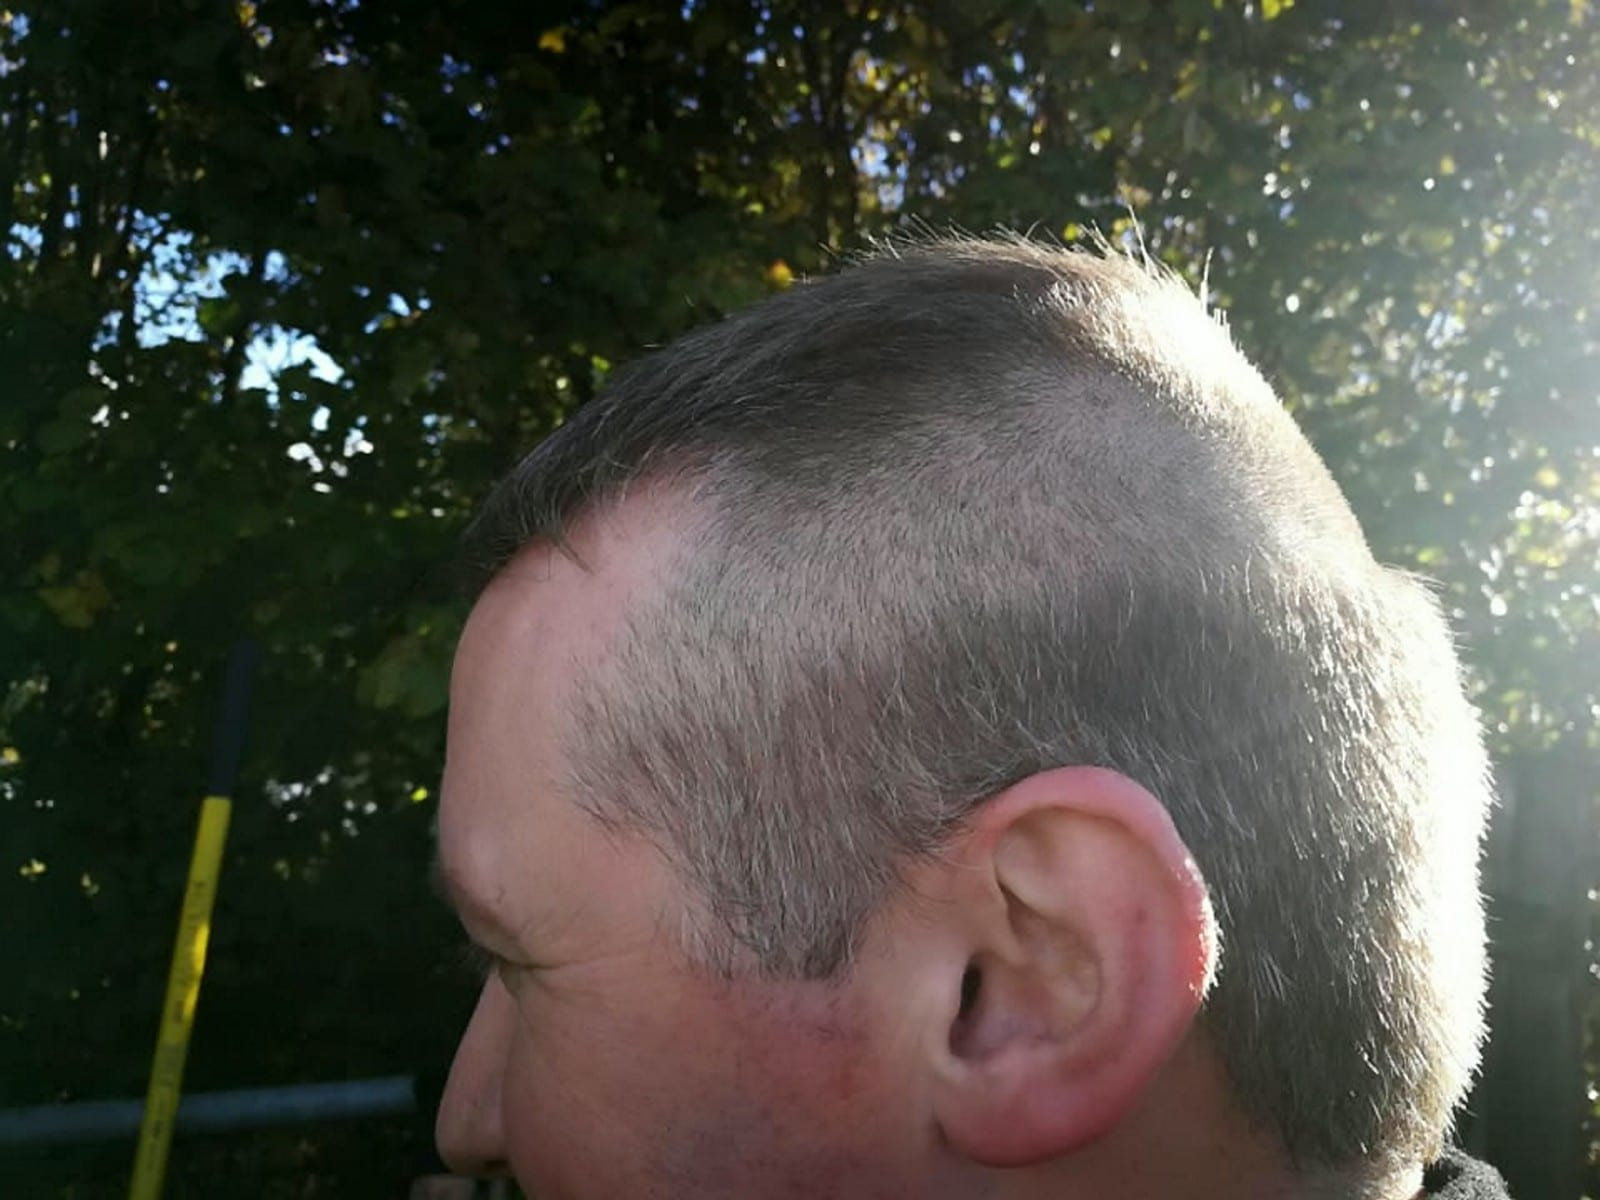 Firefighter Arrived At 999 Call With Half His Head Shaved – After Being Called Out During A HAIRCUT